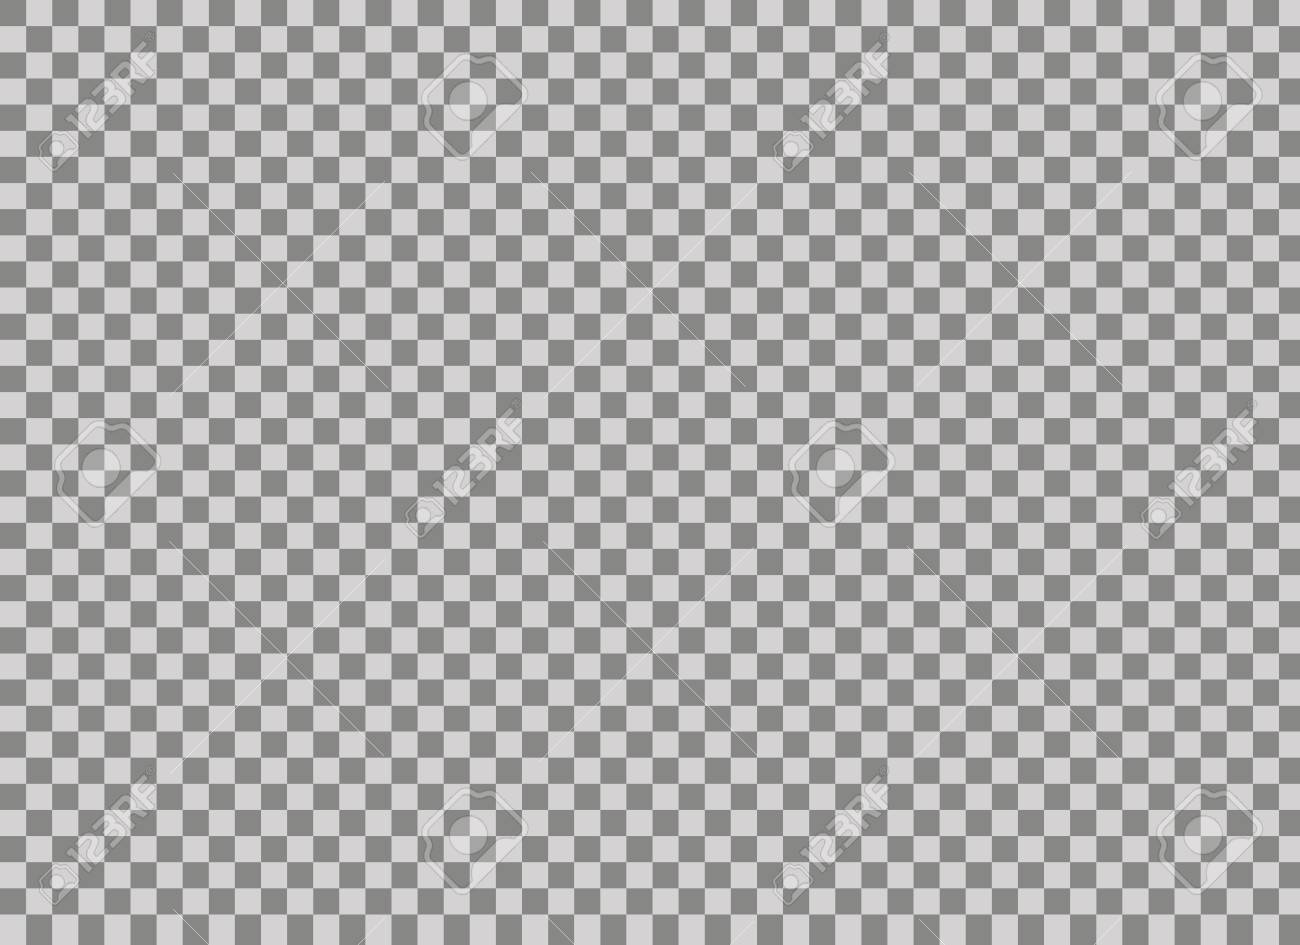 Transparent Background Transparent Grid Colorless Gray And White Royalty Free Cliparts Vectors And Stock Illustration Image 114366317